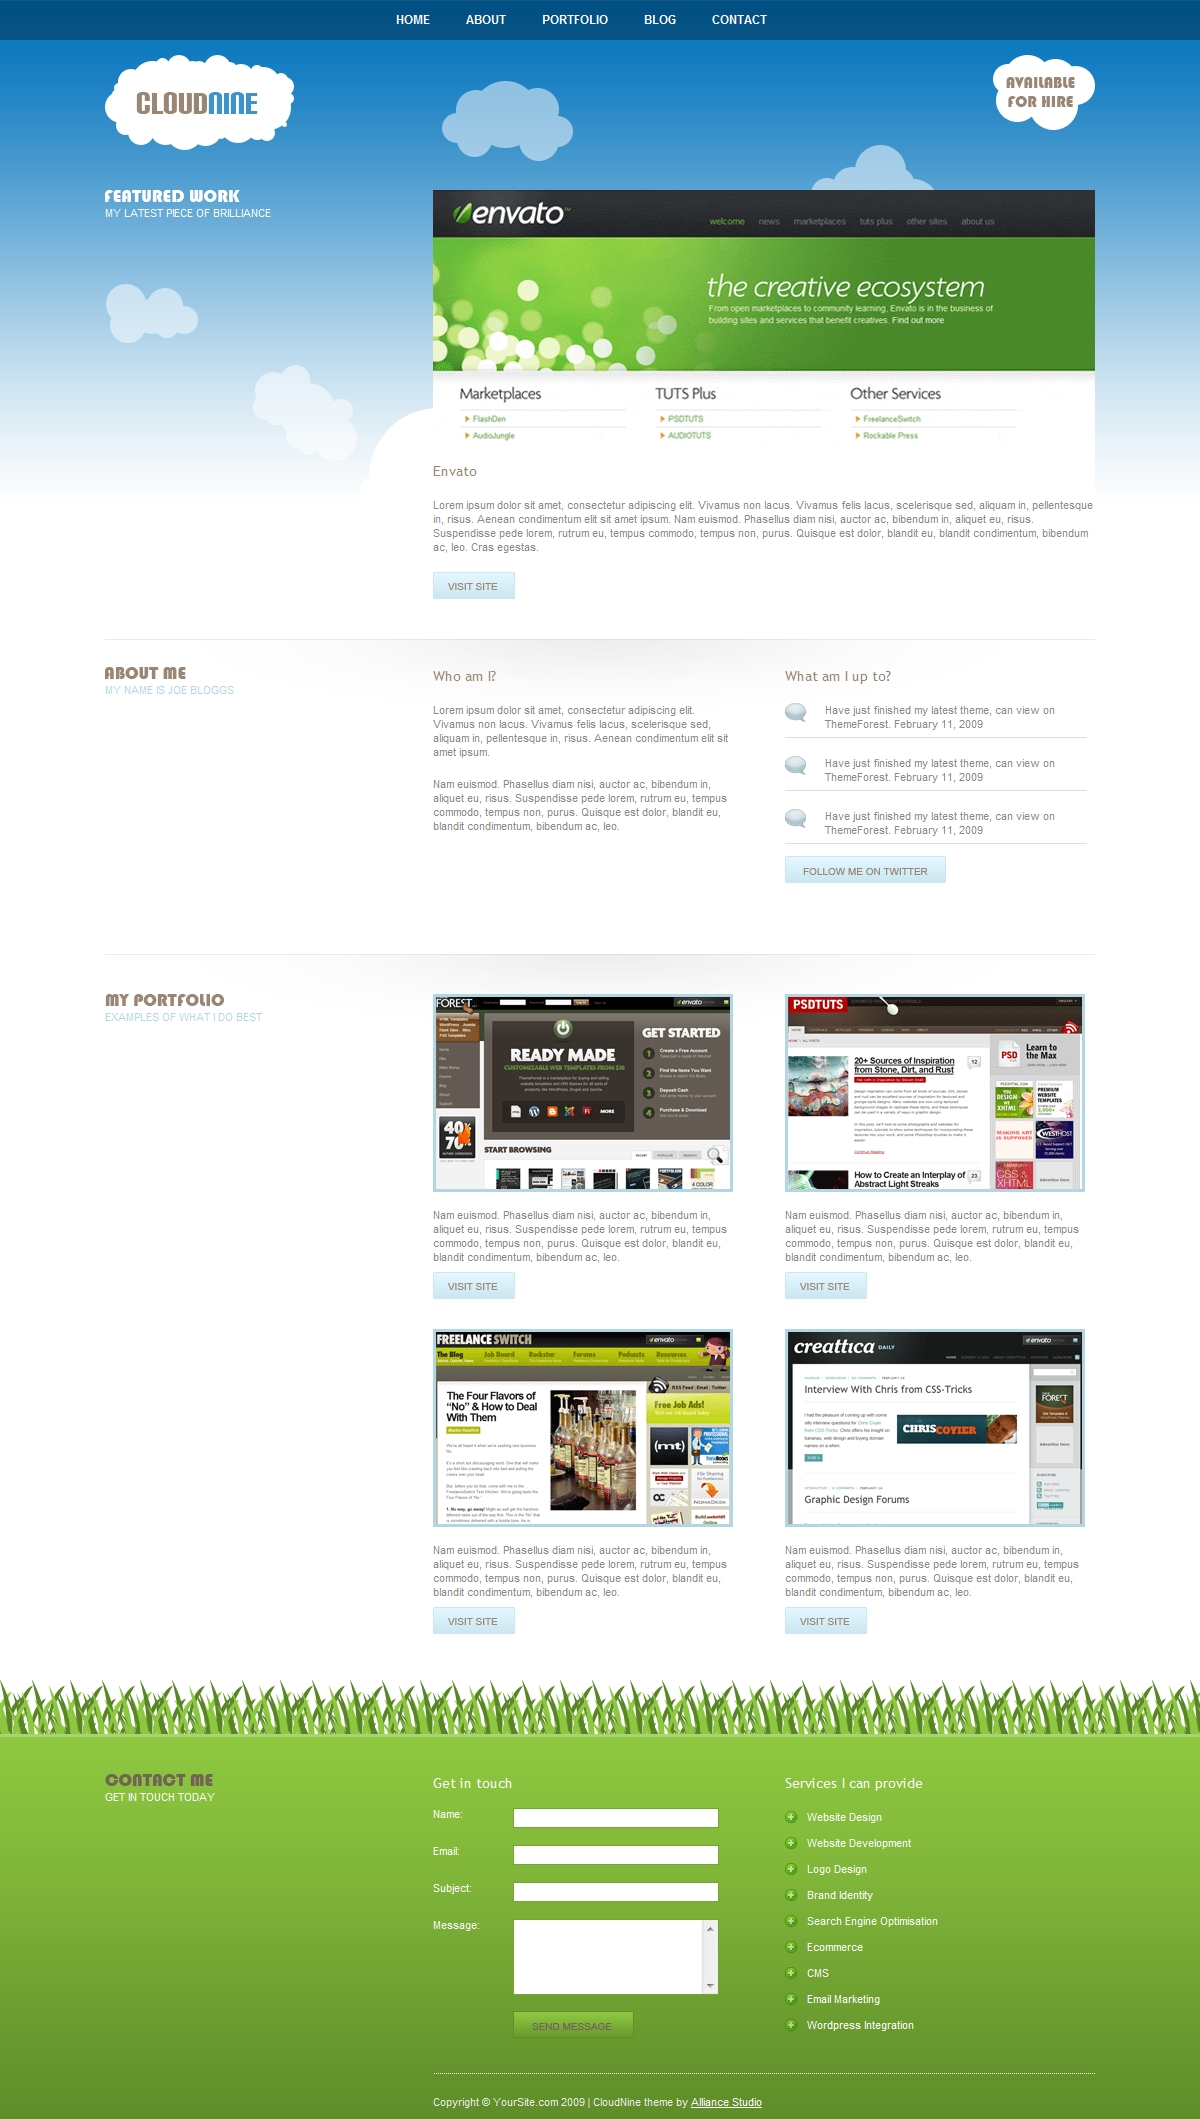 Free Download CloudNine - jQuery Powered Portfolio Template Nulled Latest Version